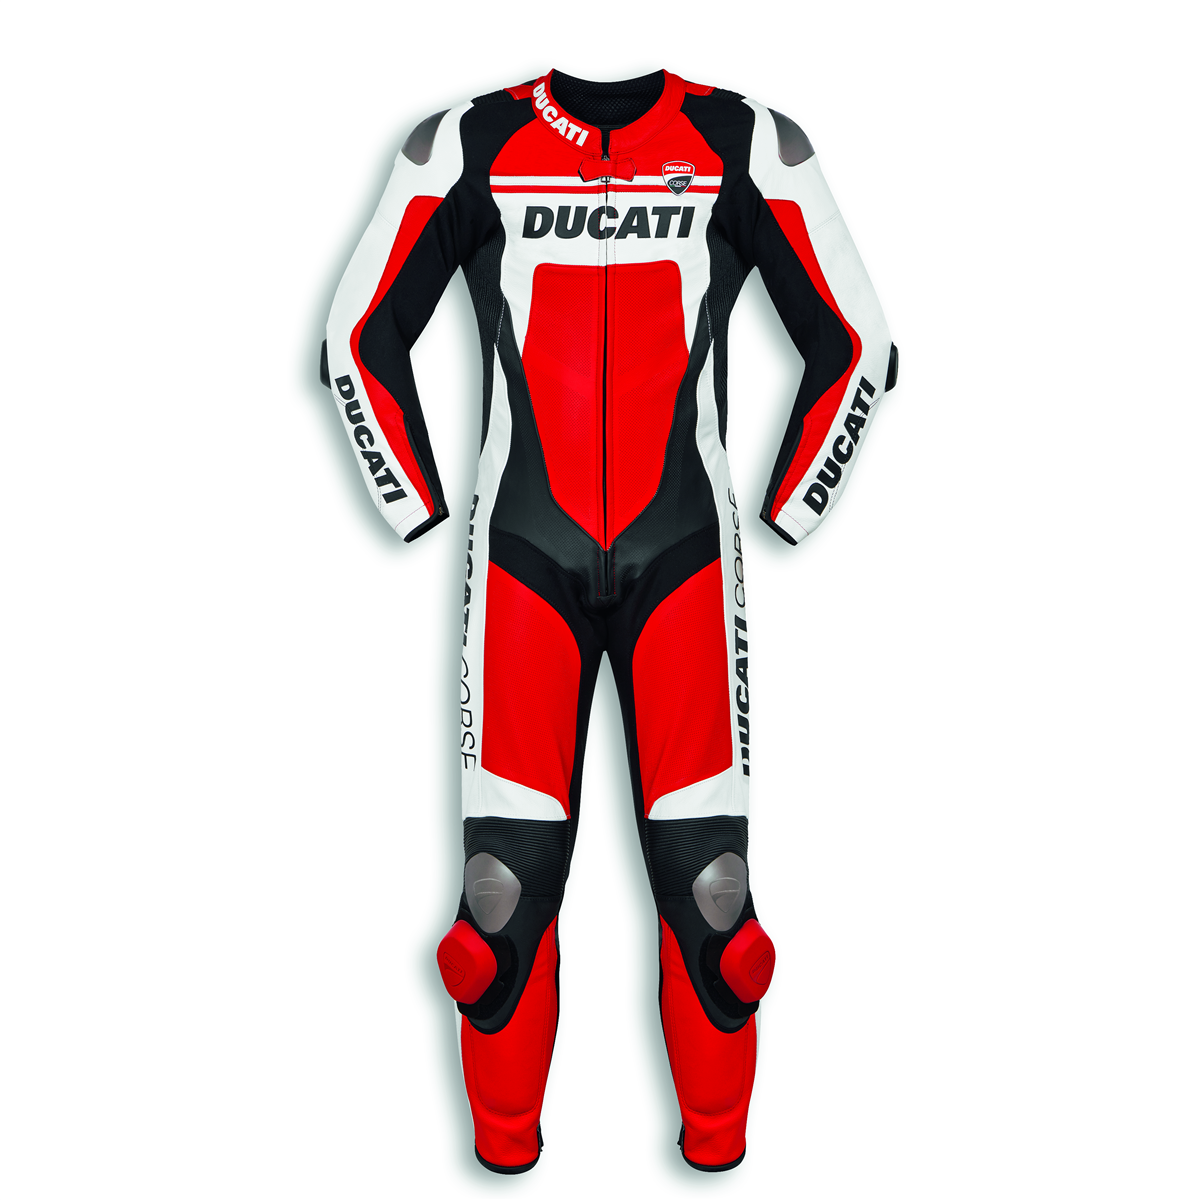 Ducati Corse C4 - Racing suit 981045148